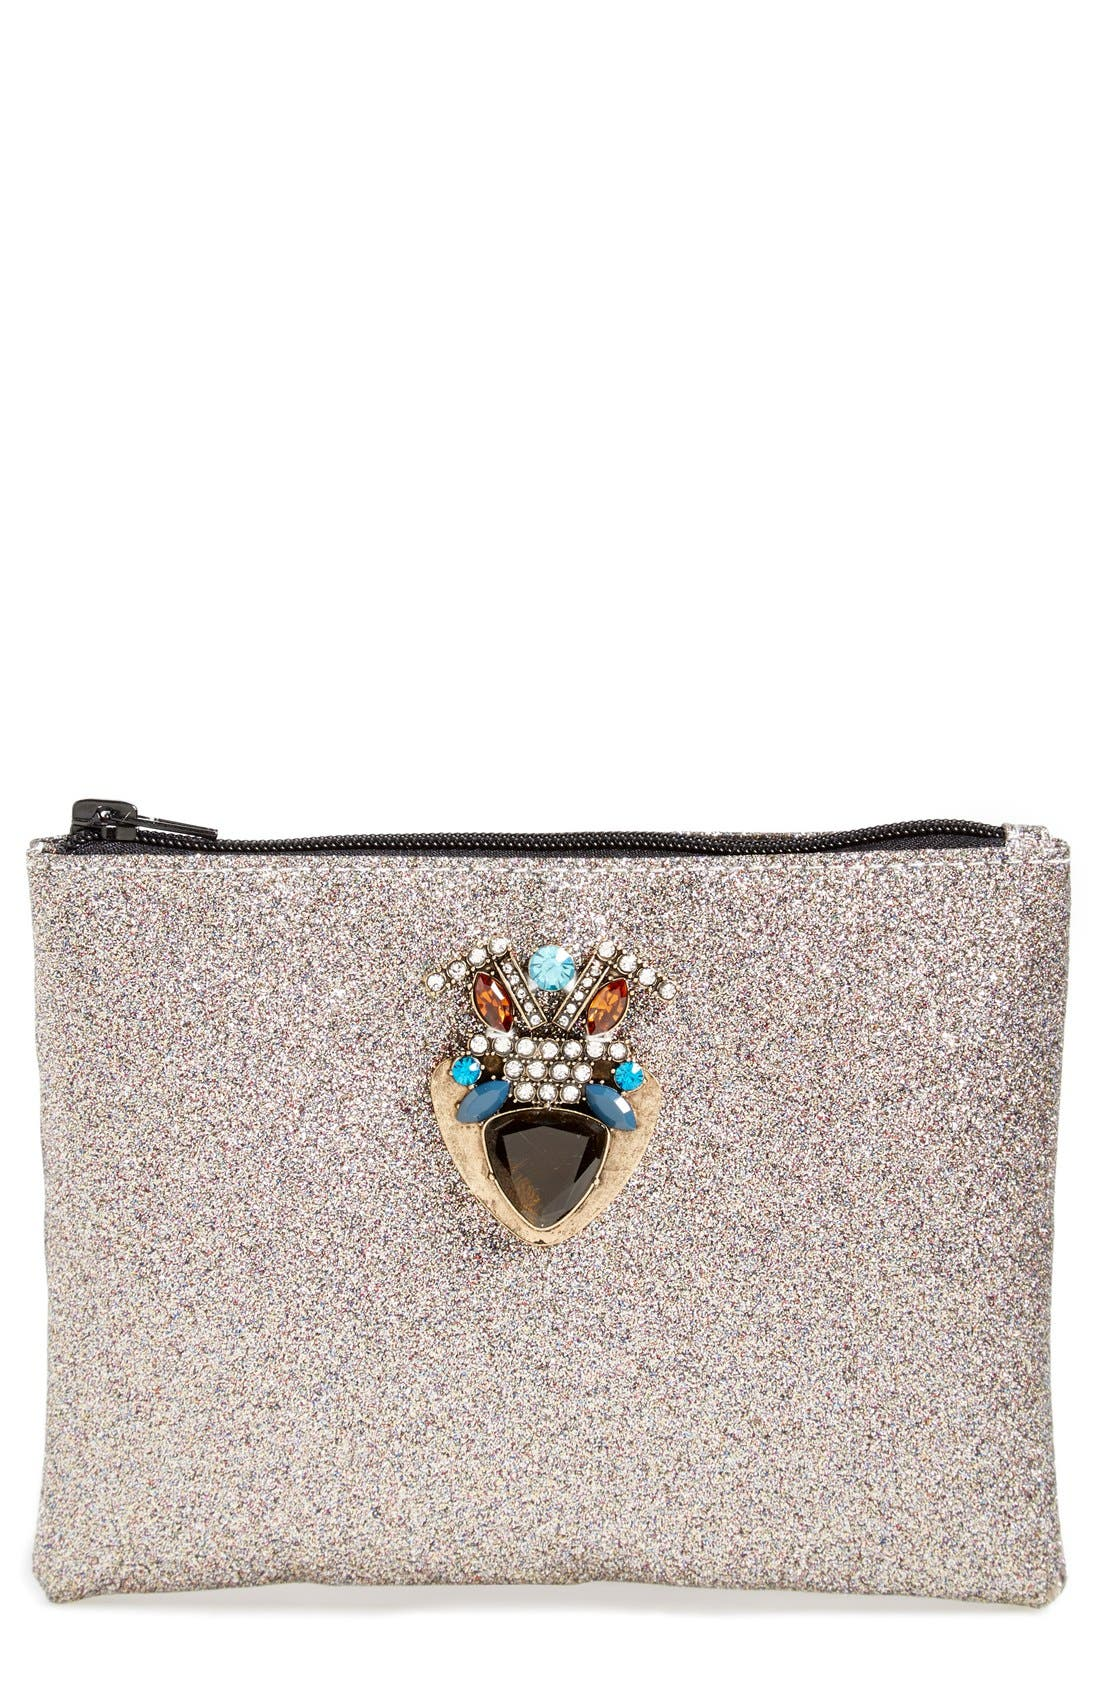 Main Image - Berry Embellished Glitter Clutch